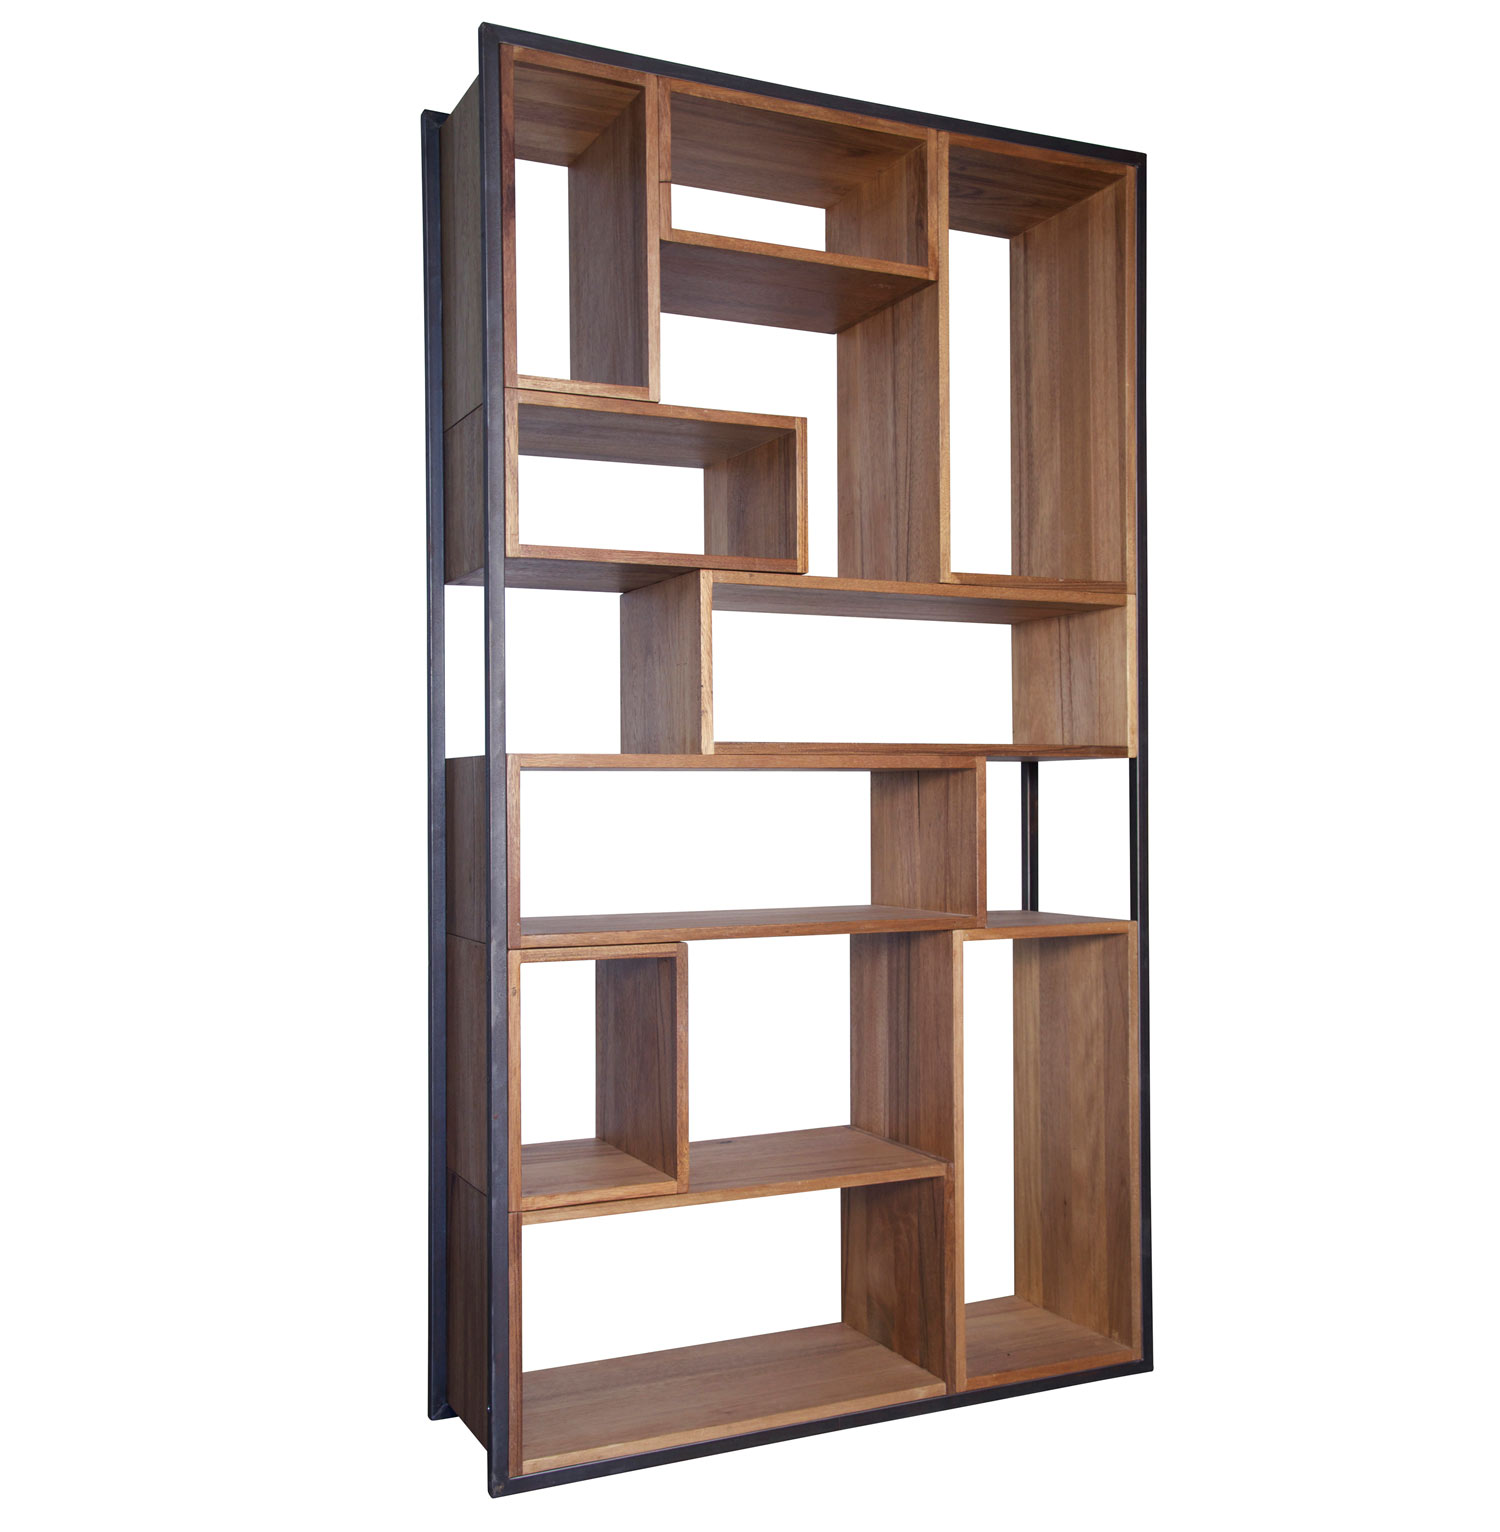 inside inches of info bookcases wide wdays plans architecture h with best bookcase photos inch solutions designs doors